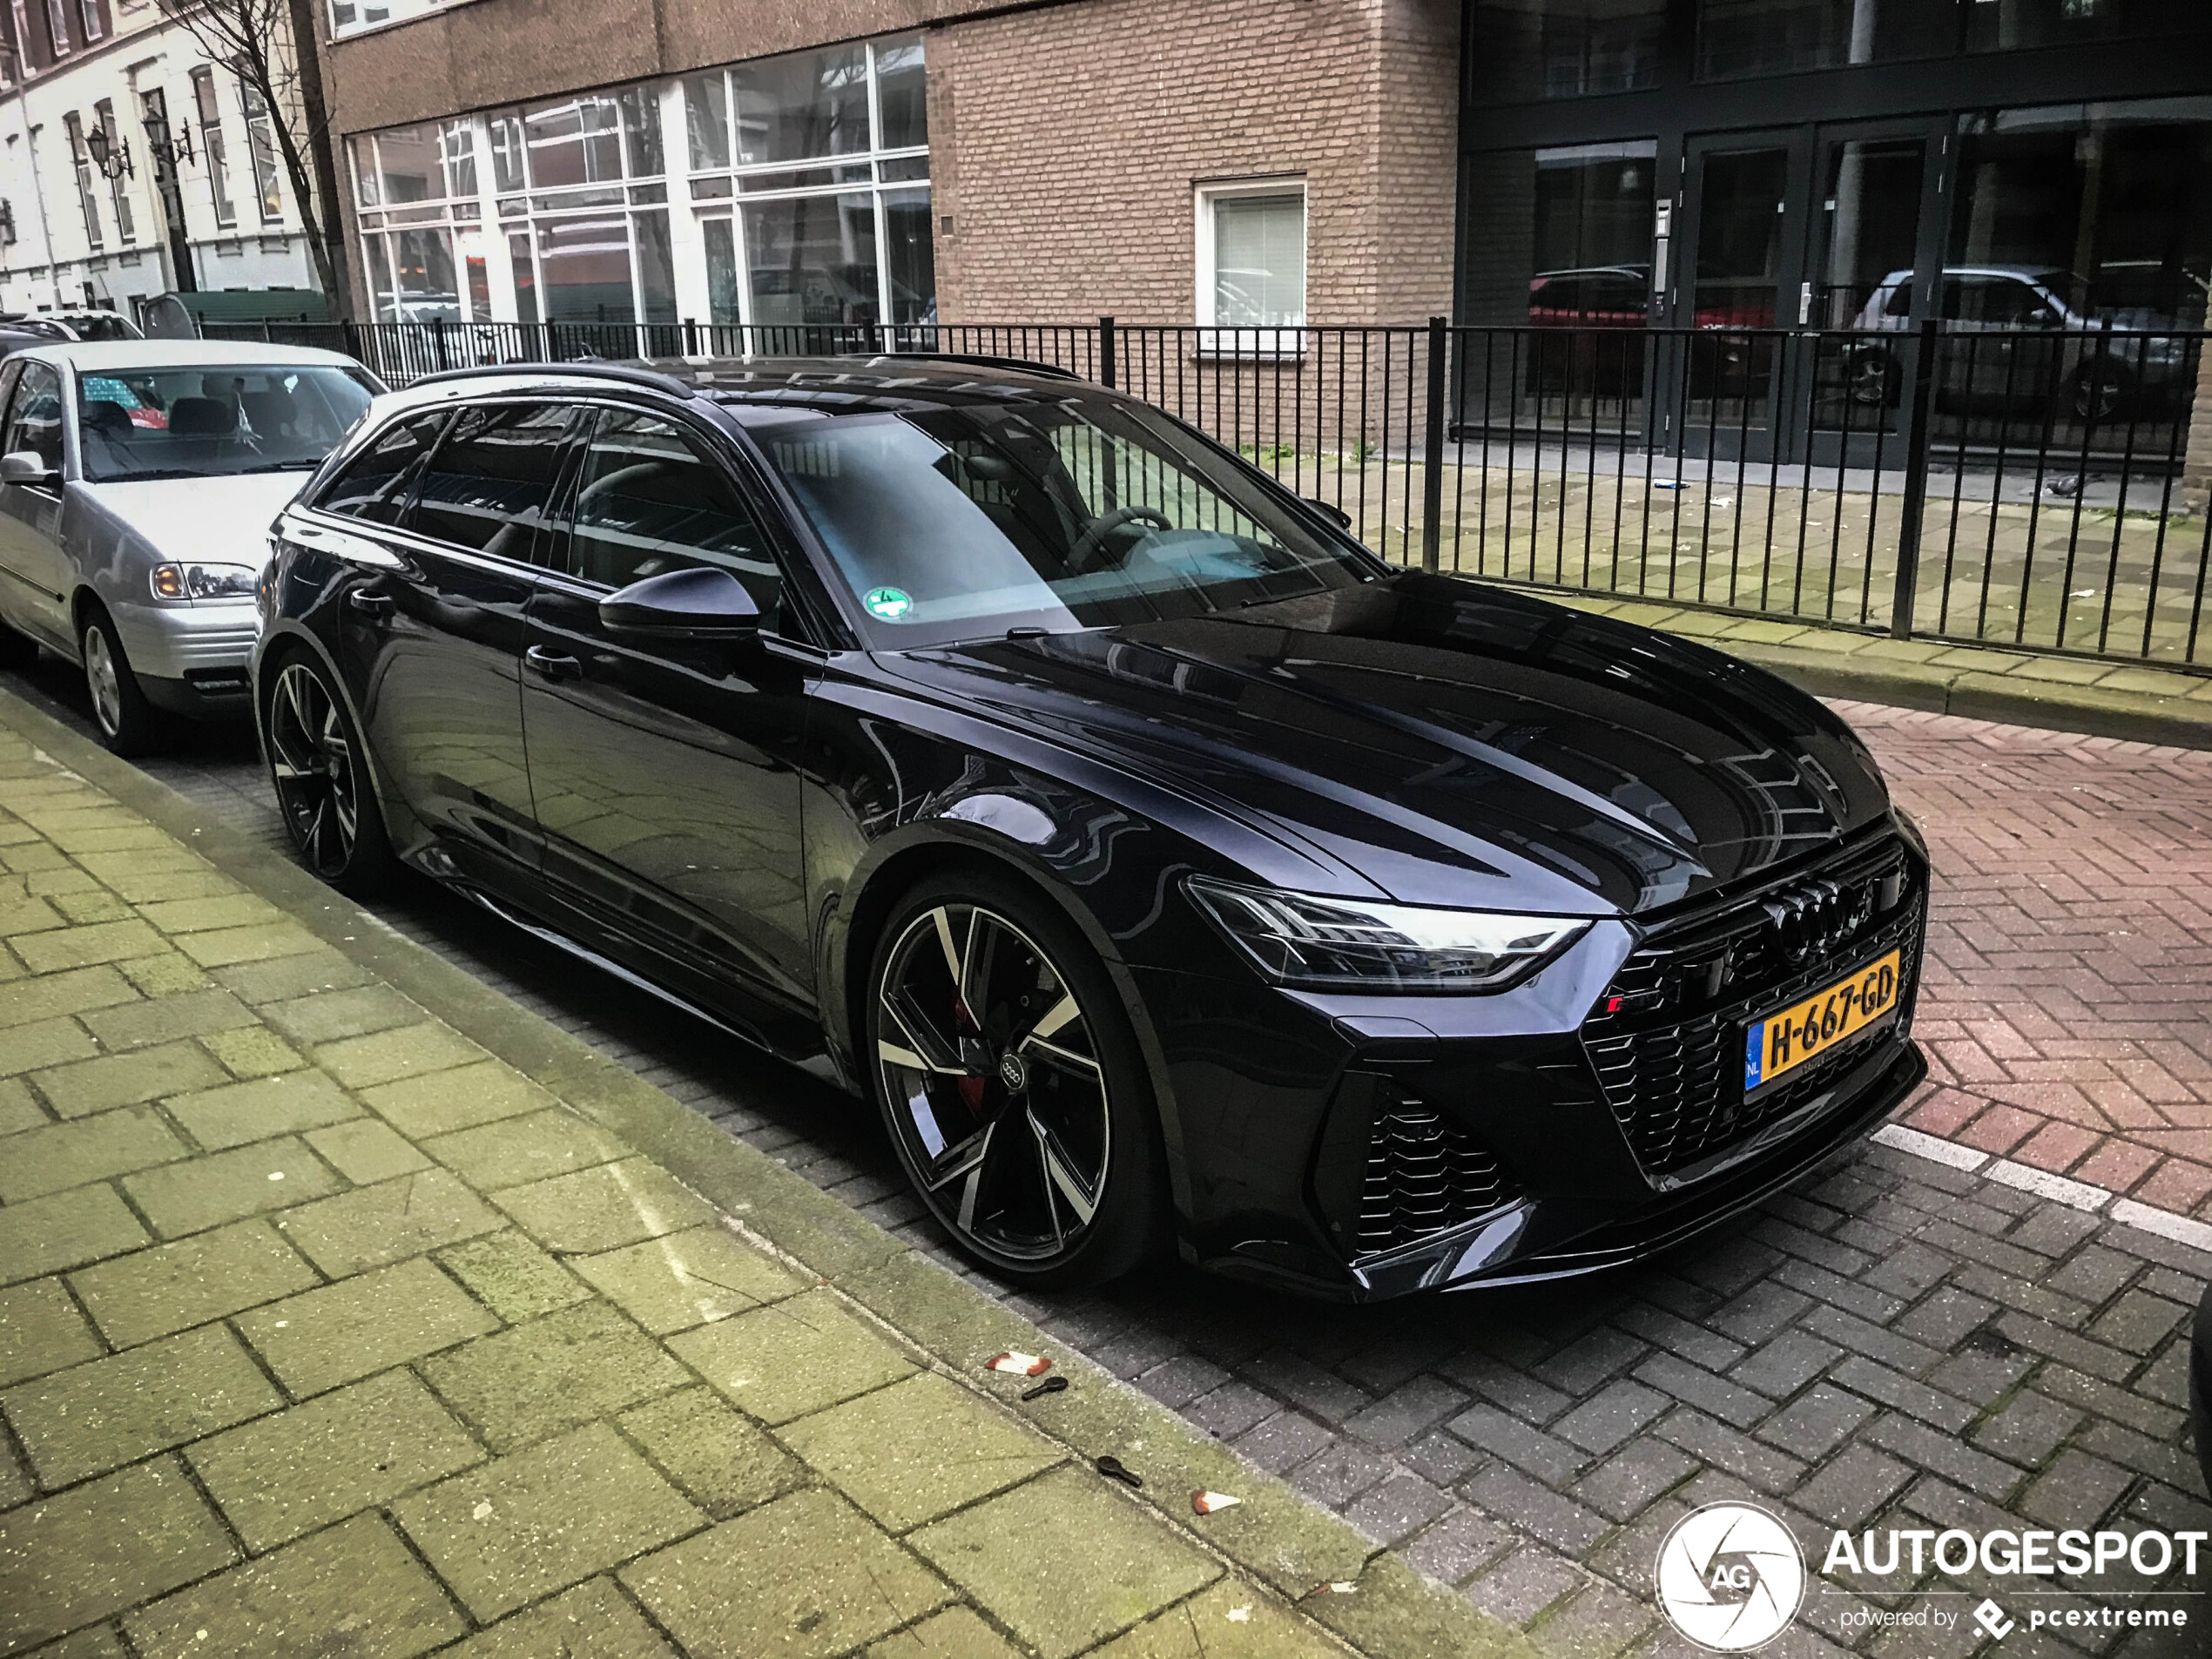 Already on the streets: Audi RS6 Avant C8